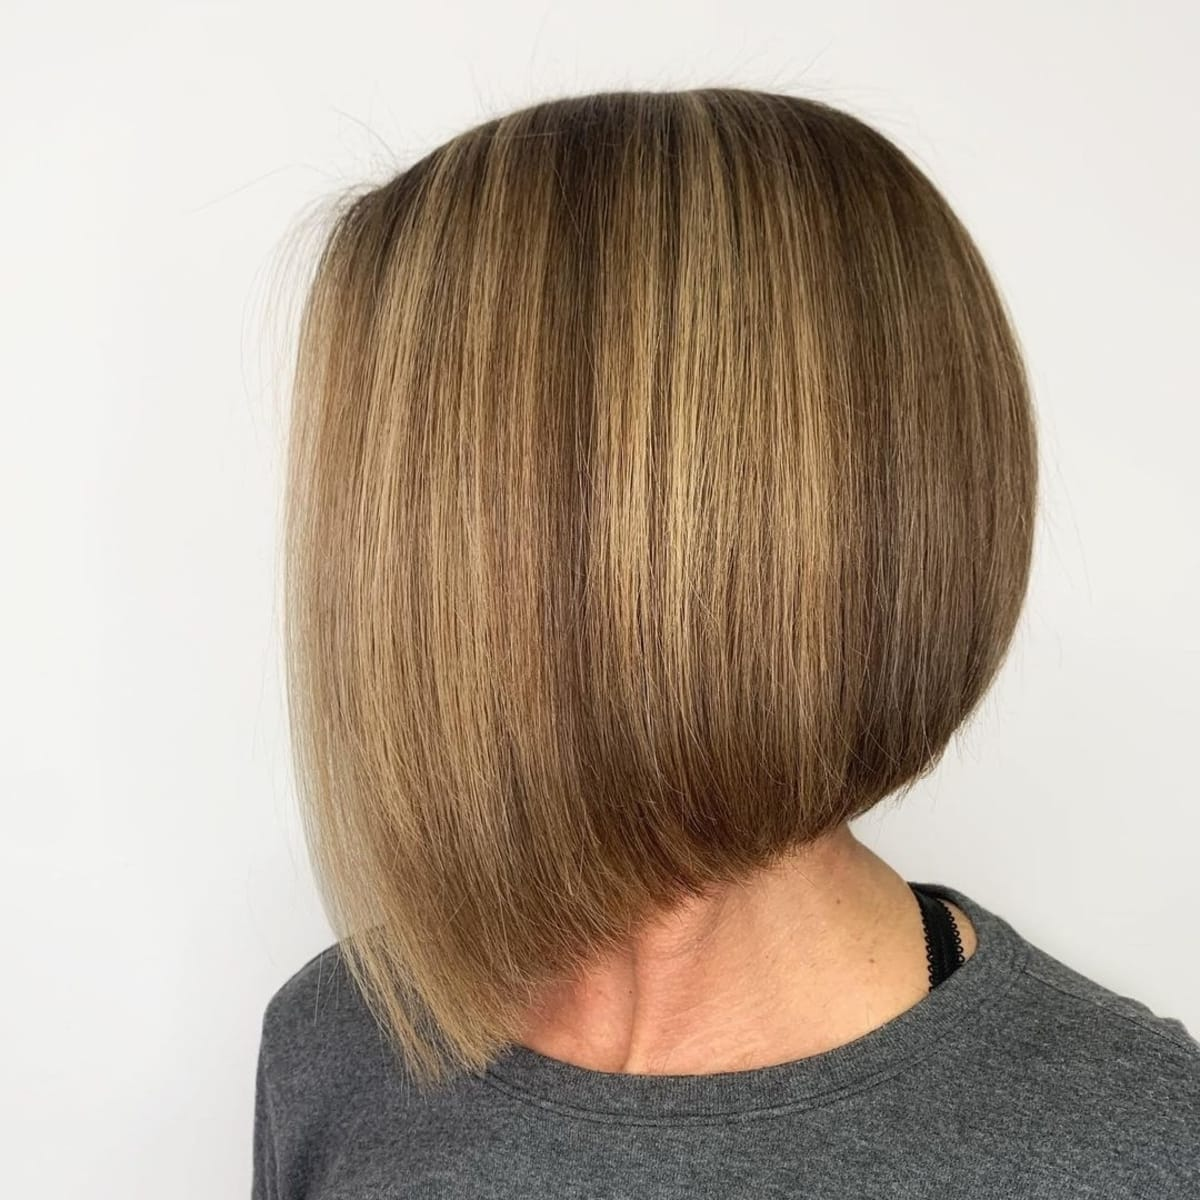 15 Modern Inverted Bob Haircuts Women Are Getting Now